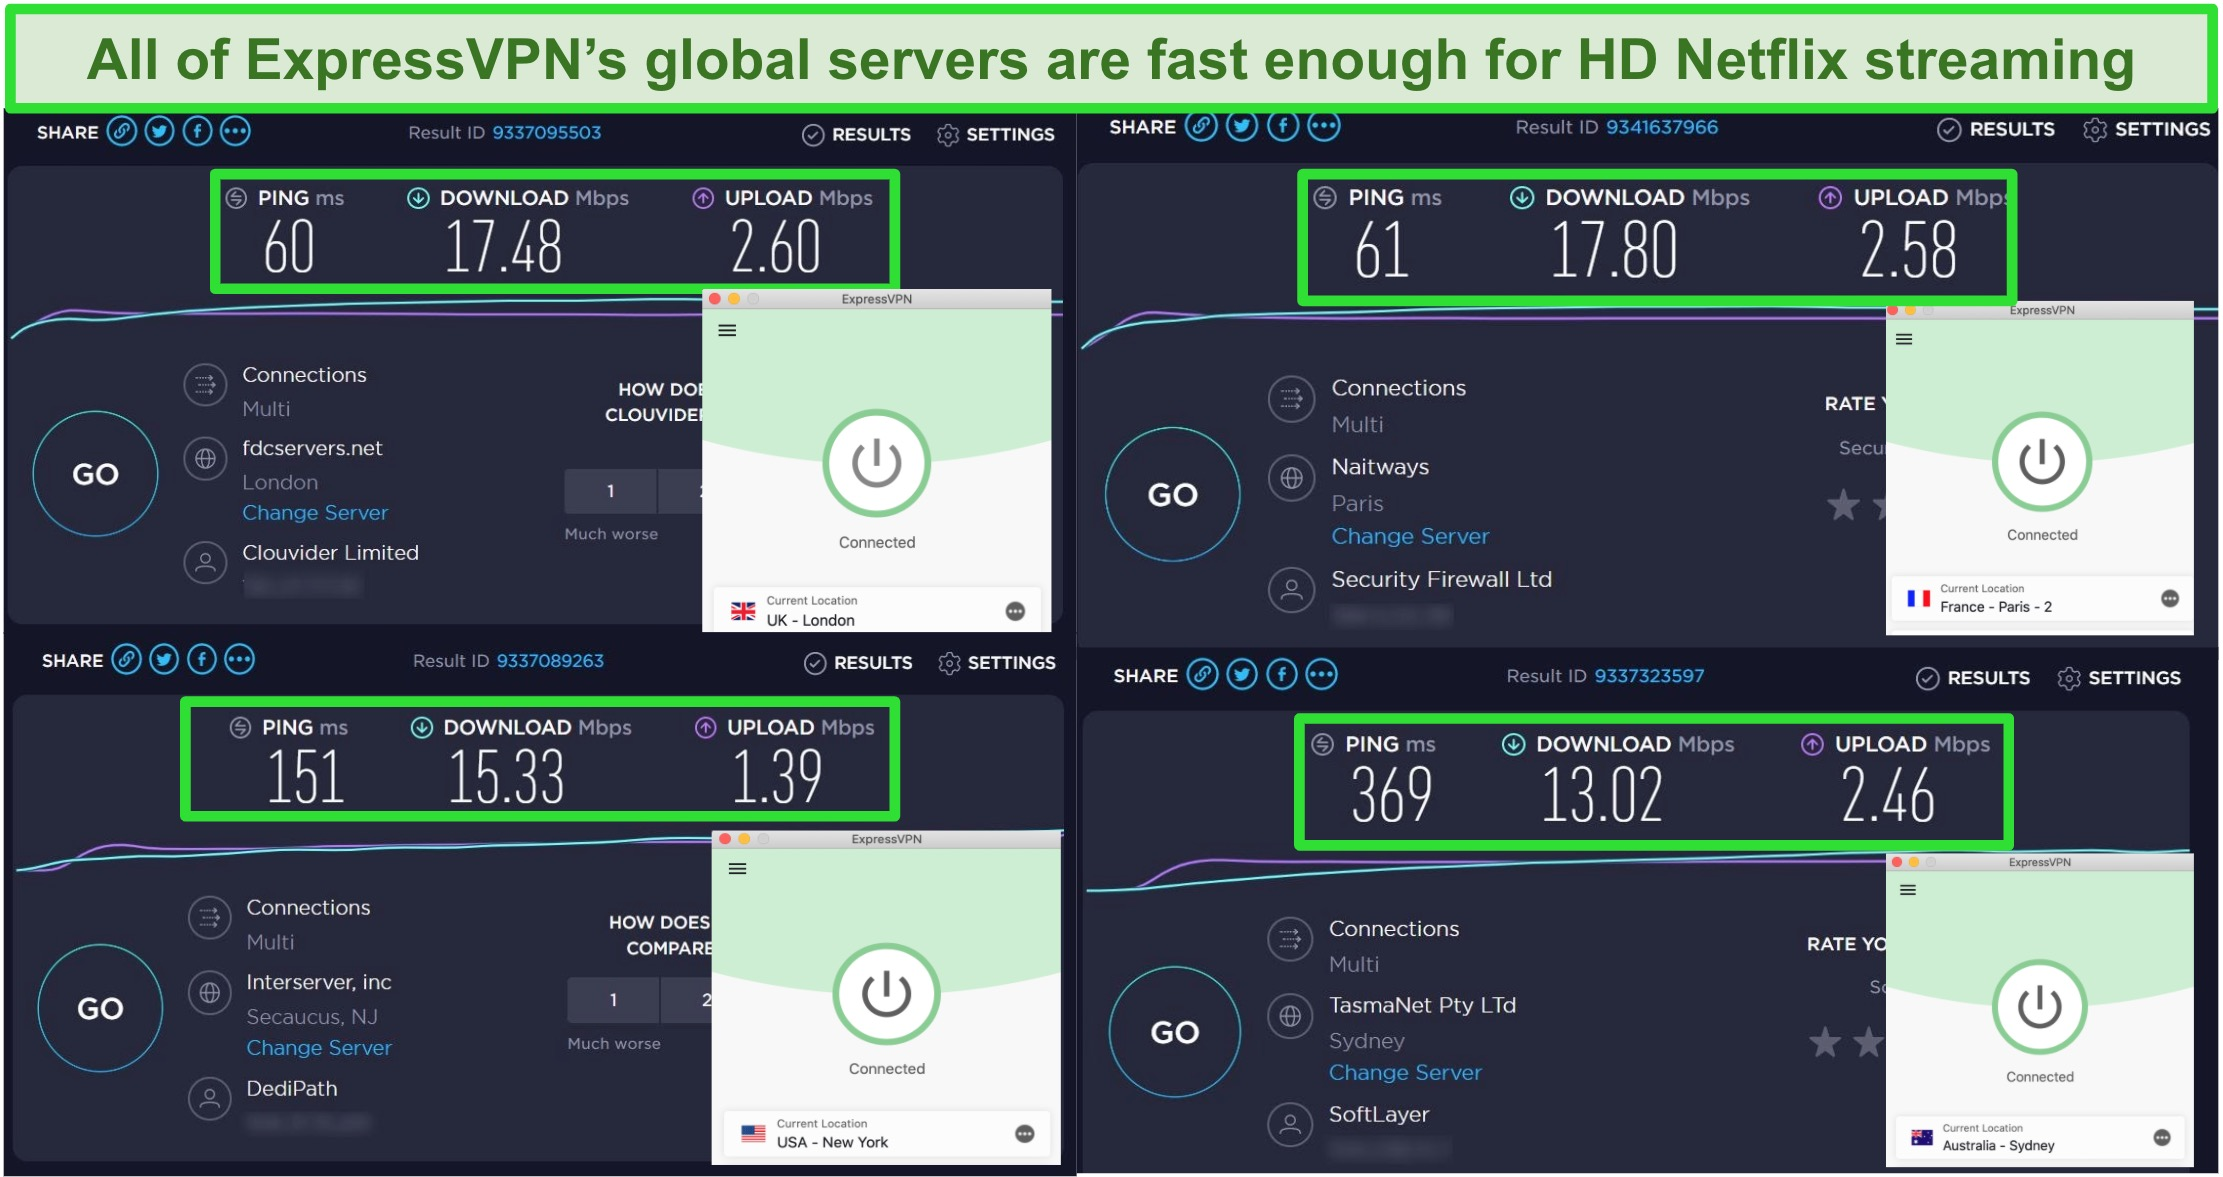 Screenshots of ExpressVPN speed test showing fast speeds for different servers around the world for HD Netflix streaming